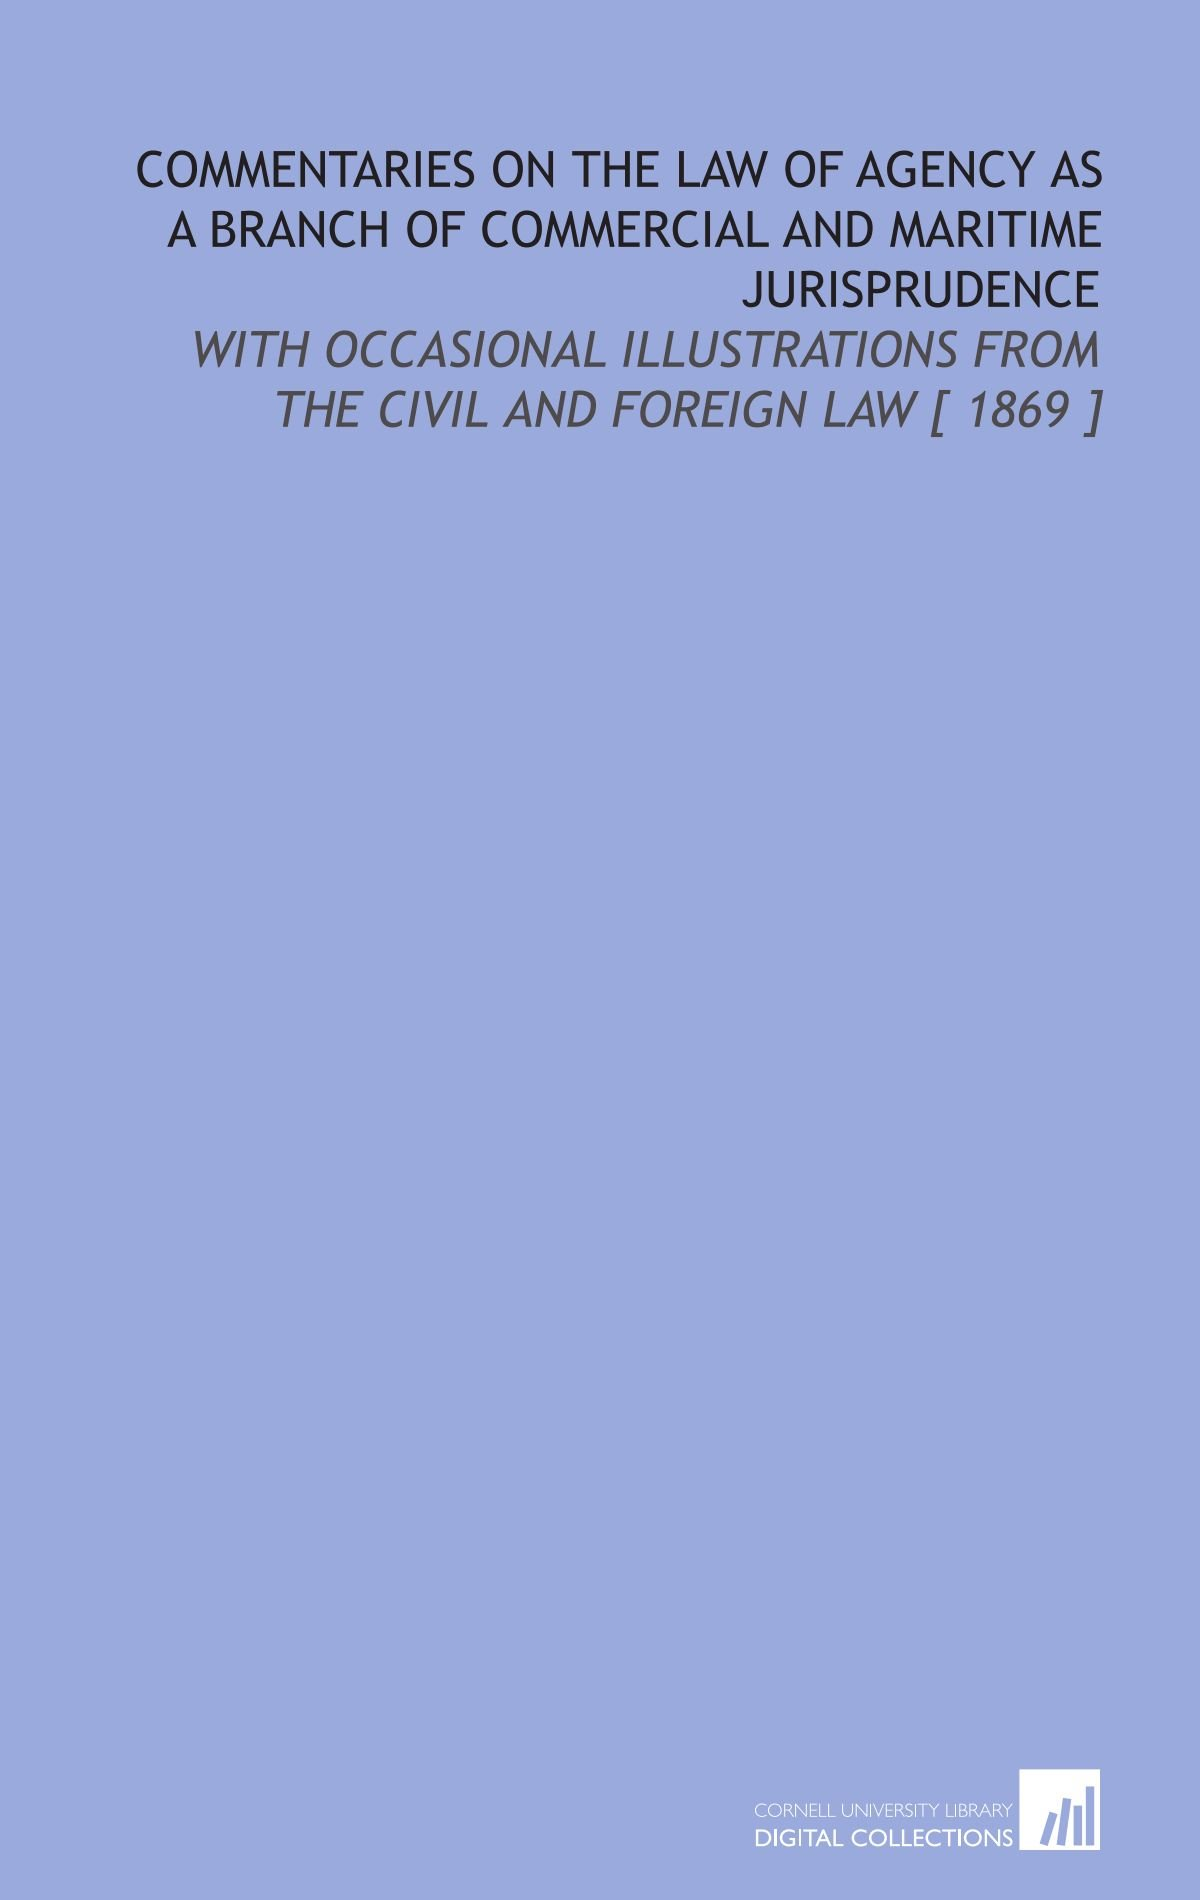 Commentaries on the Law of Agency as a Branch of Commercial and Maritime Jurisprudence: With Occasional Illustrations From the Civil and Foreign Law [ 1869 ] PDF